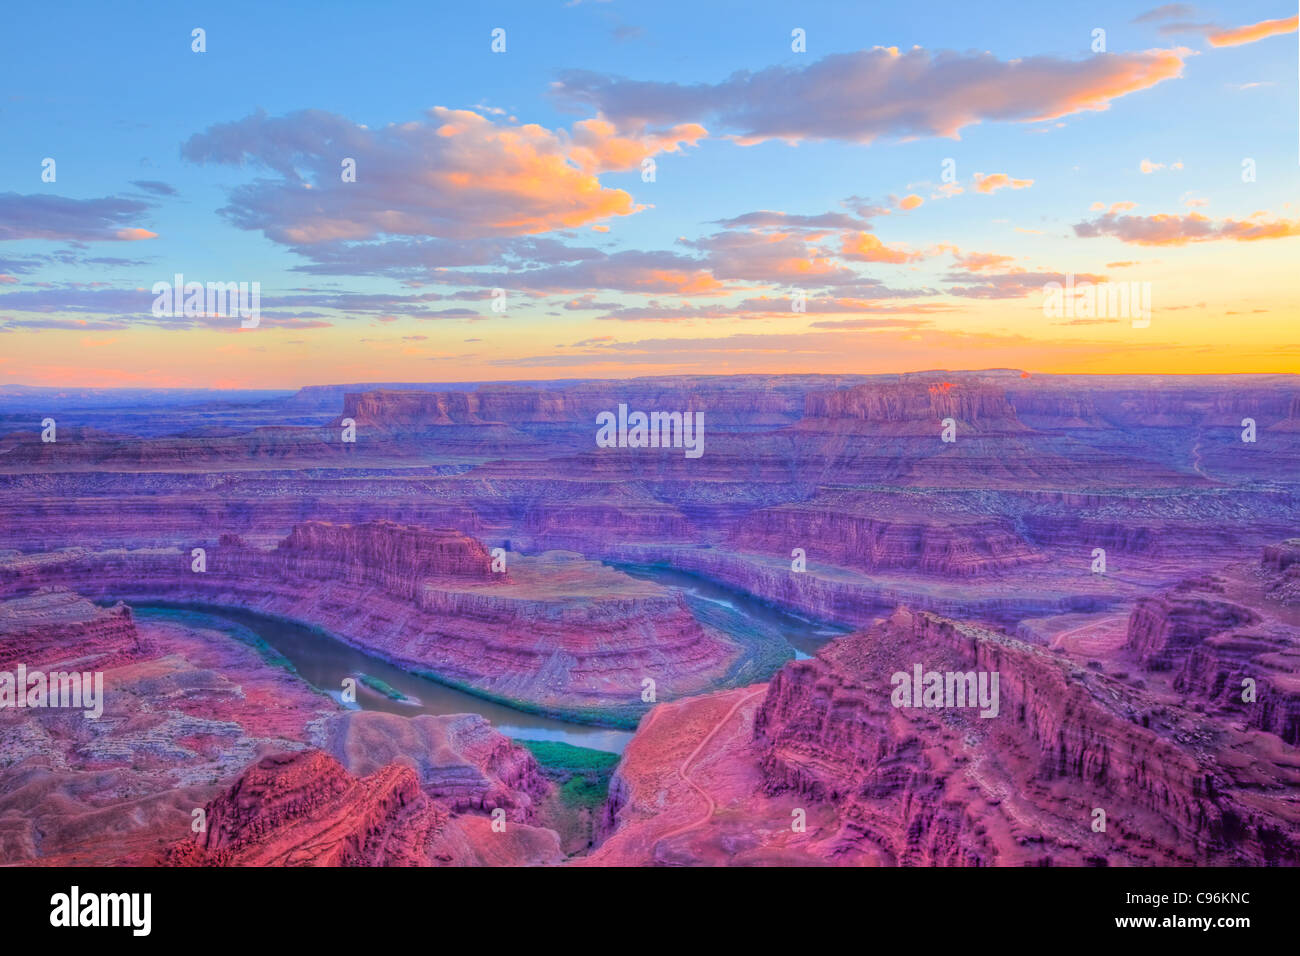 Dead Horse Point at sunset, Dead Horse Point State Park, Utah, Colorado River, Looking into Canyonlands National - Stock Image